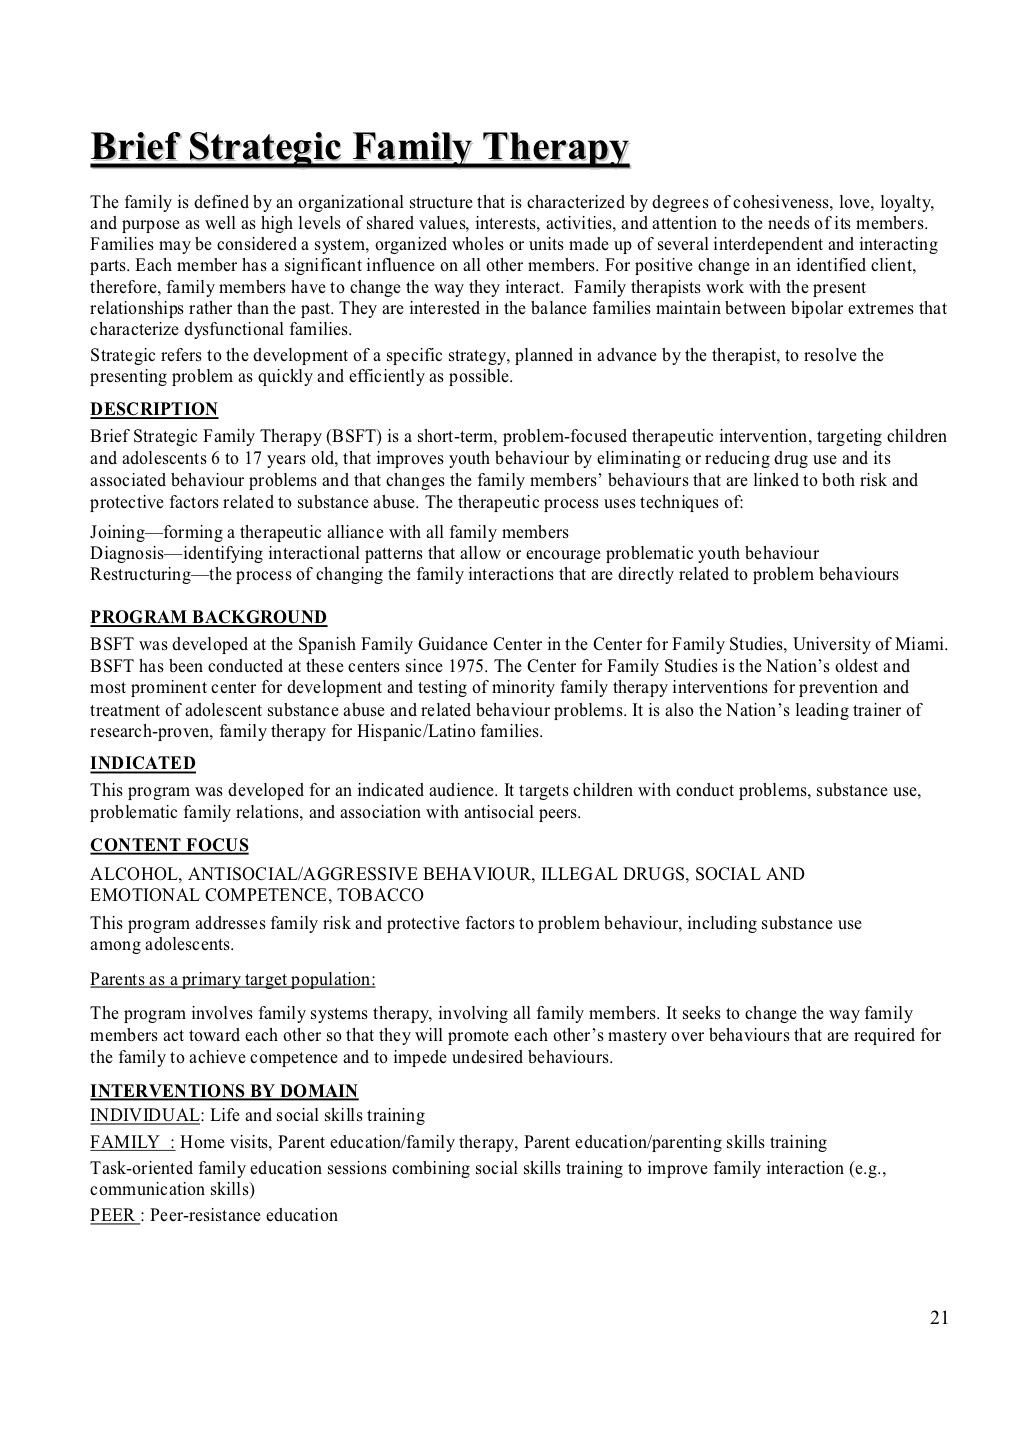 009 Essay Example Counselling Excellent Topics Questions Guidance And Large